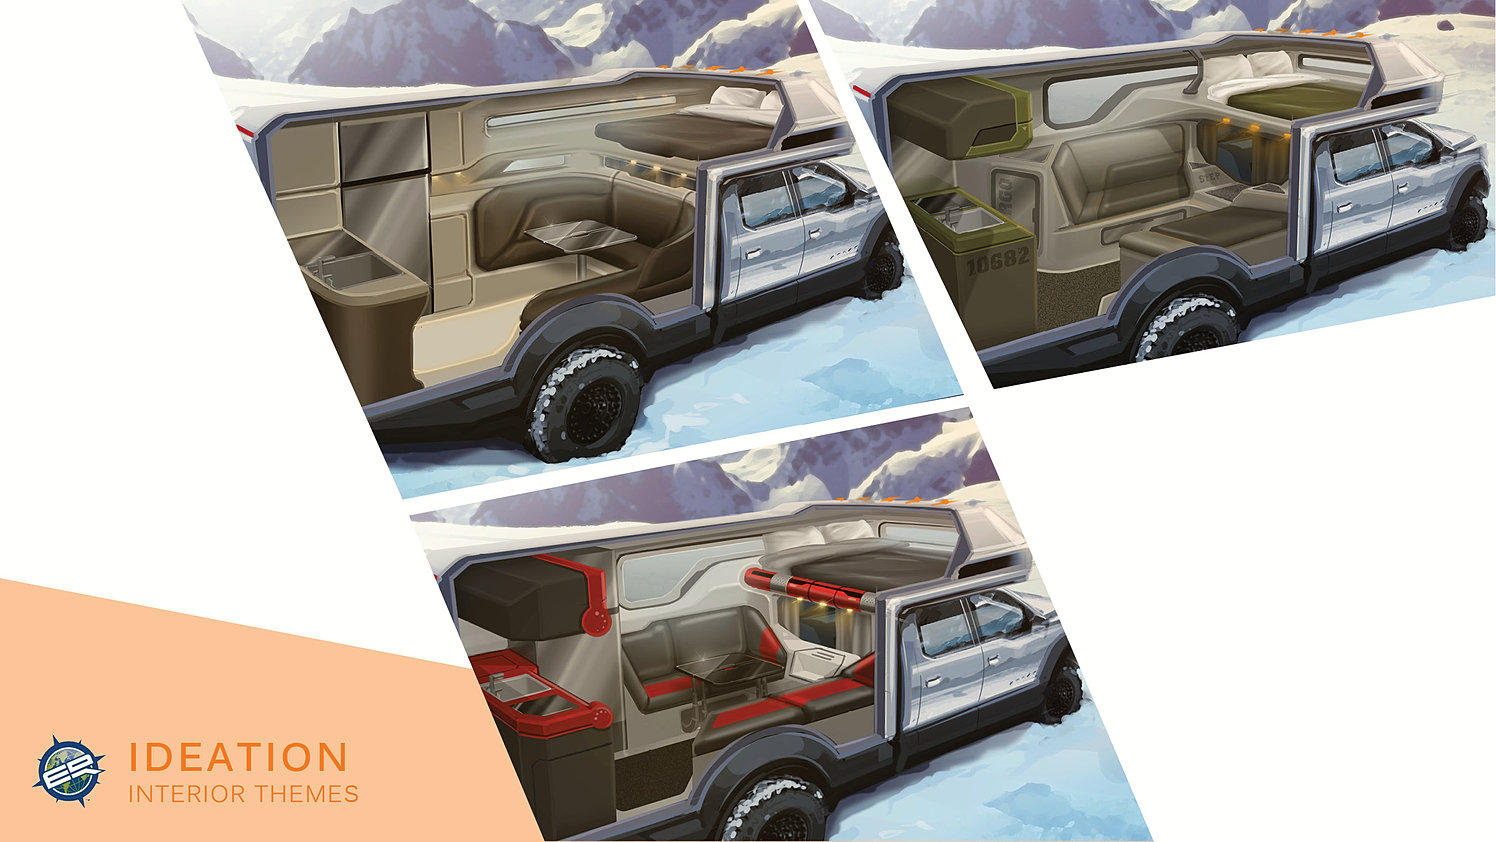 Off Road Design >> knackdesignstudio | OFF-ROAD CAMPER